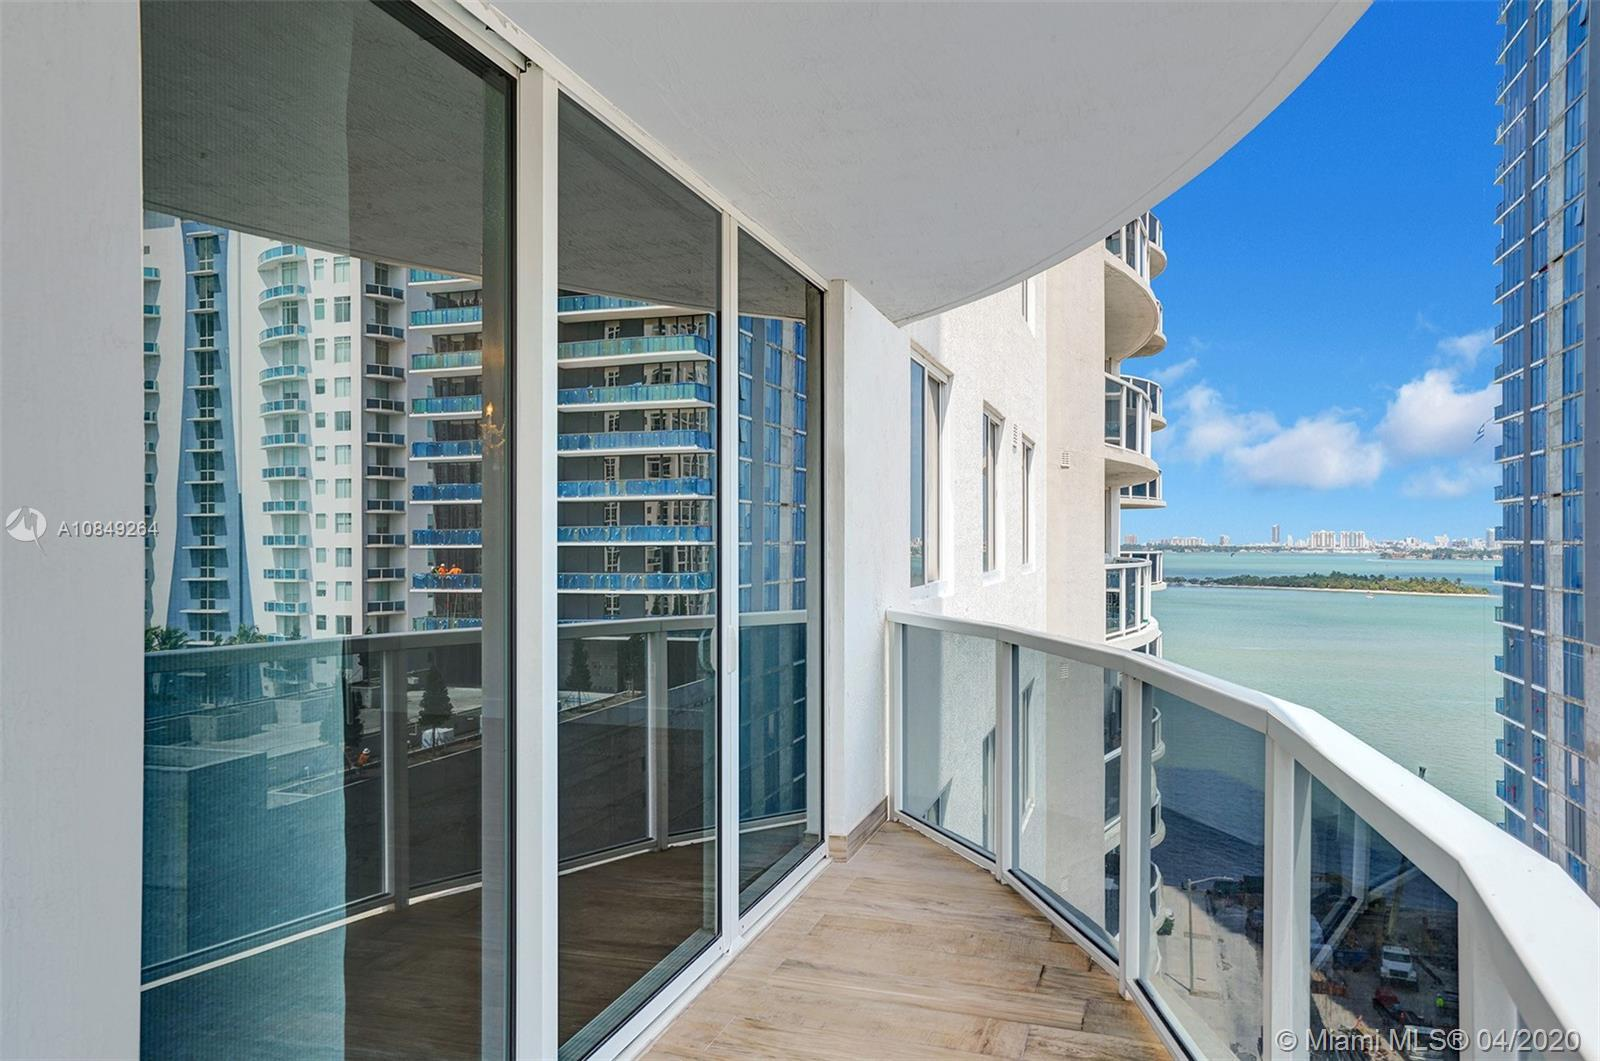 Incredible 3 Bedroom unit with a stunning bay view located in the heart of Miami. Super functional,